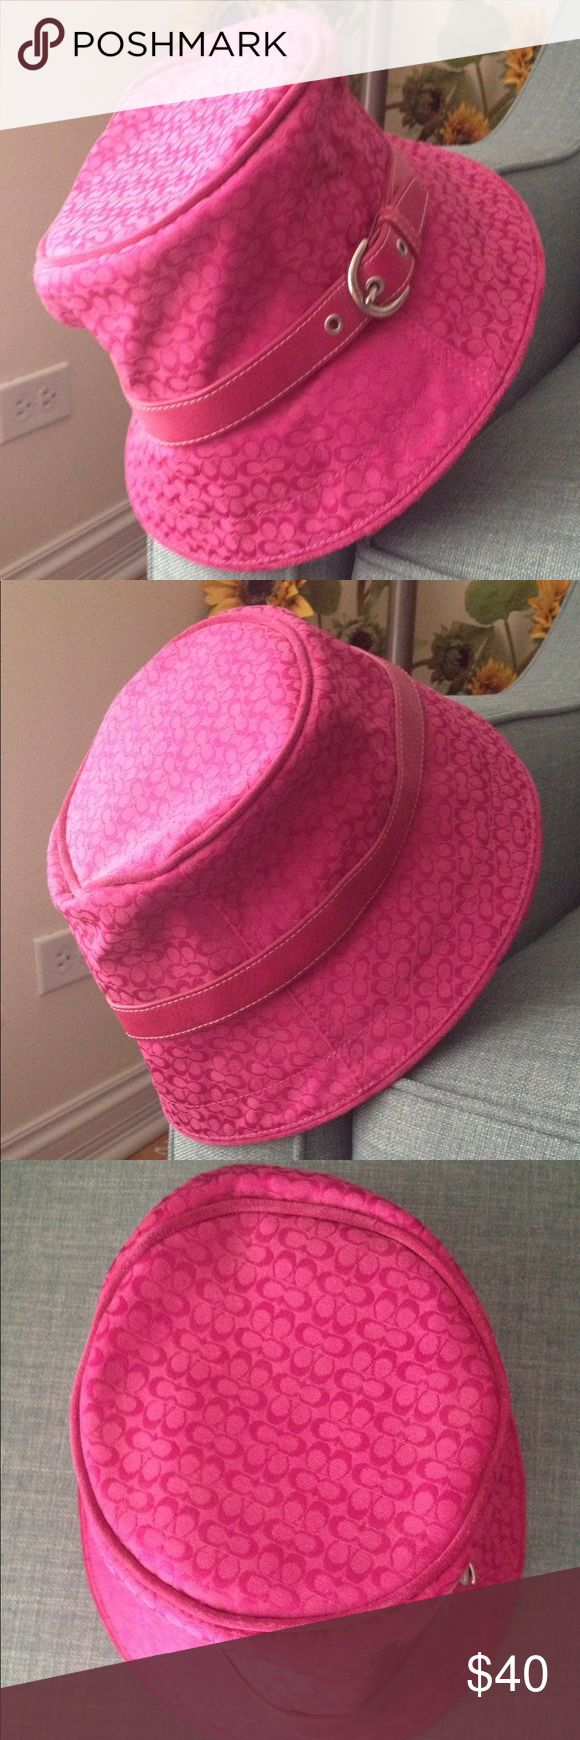 Pink Coach hat Hot pink Coach hat with leather trim and silver buckle. Excellent condition. Coach Accessories Hats